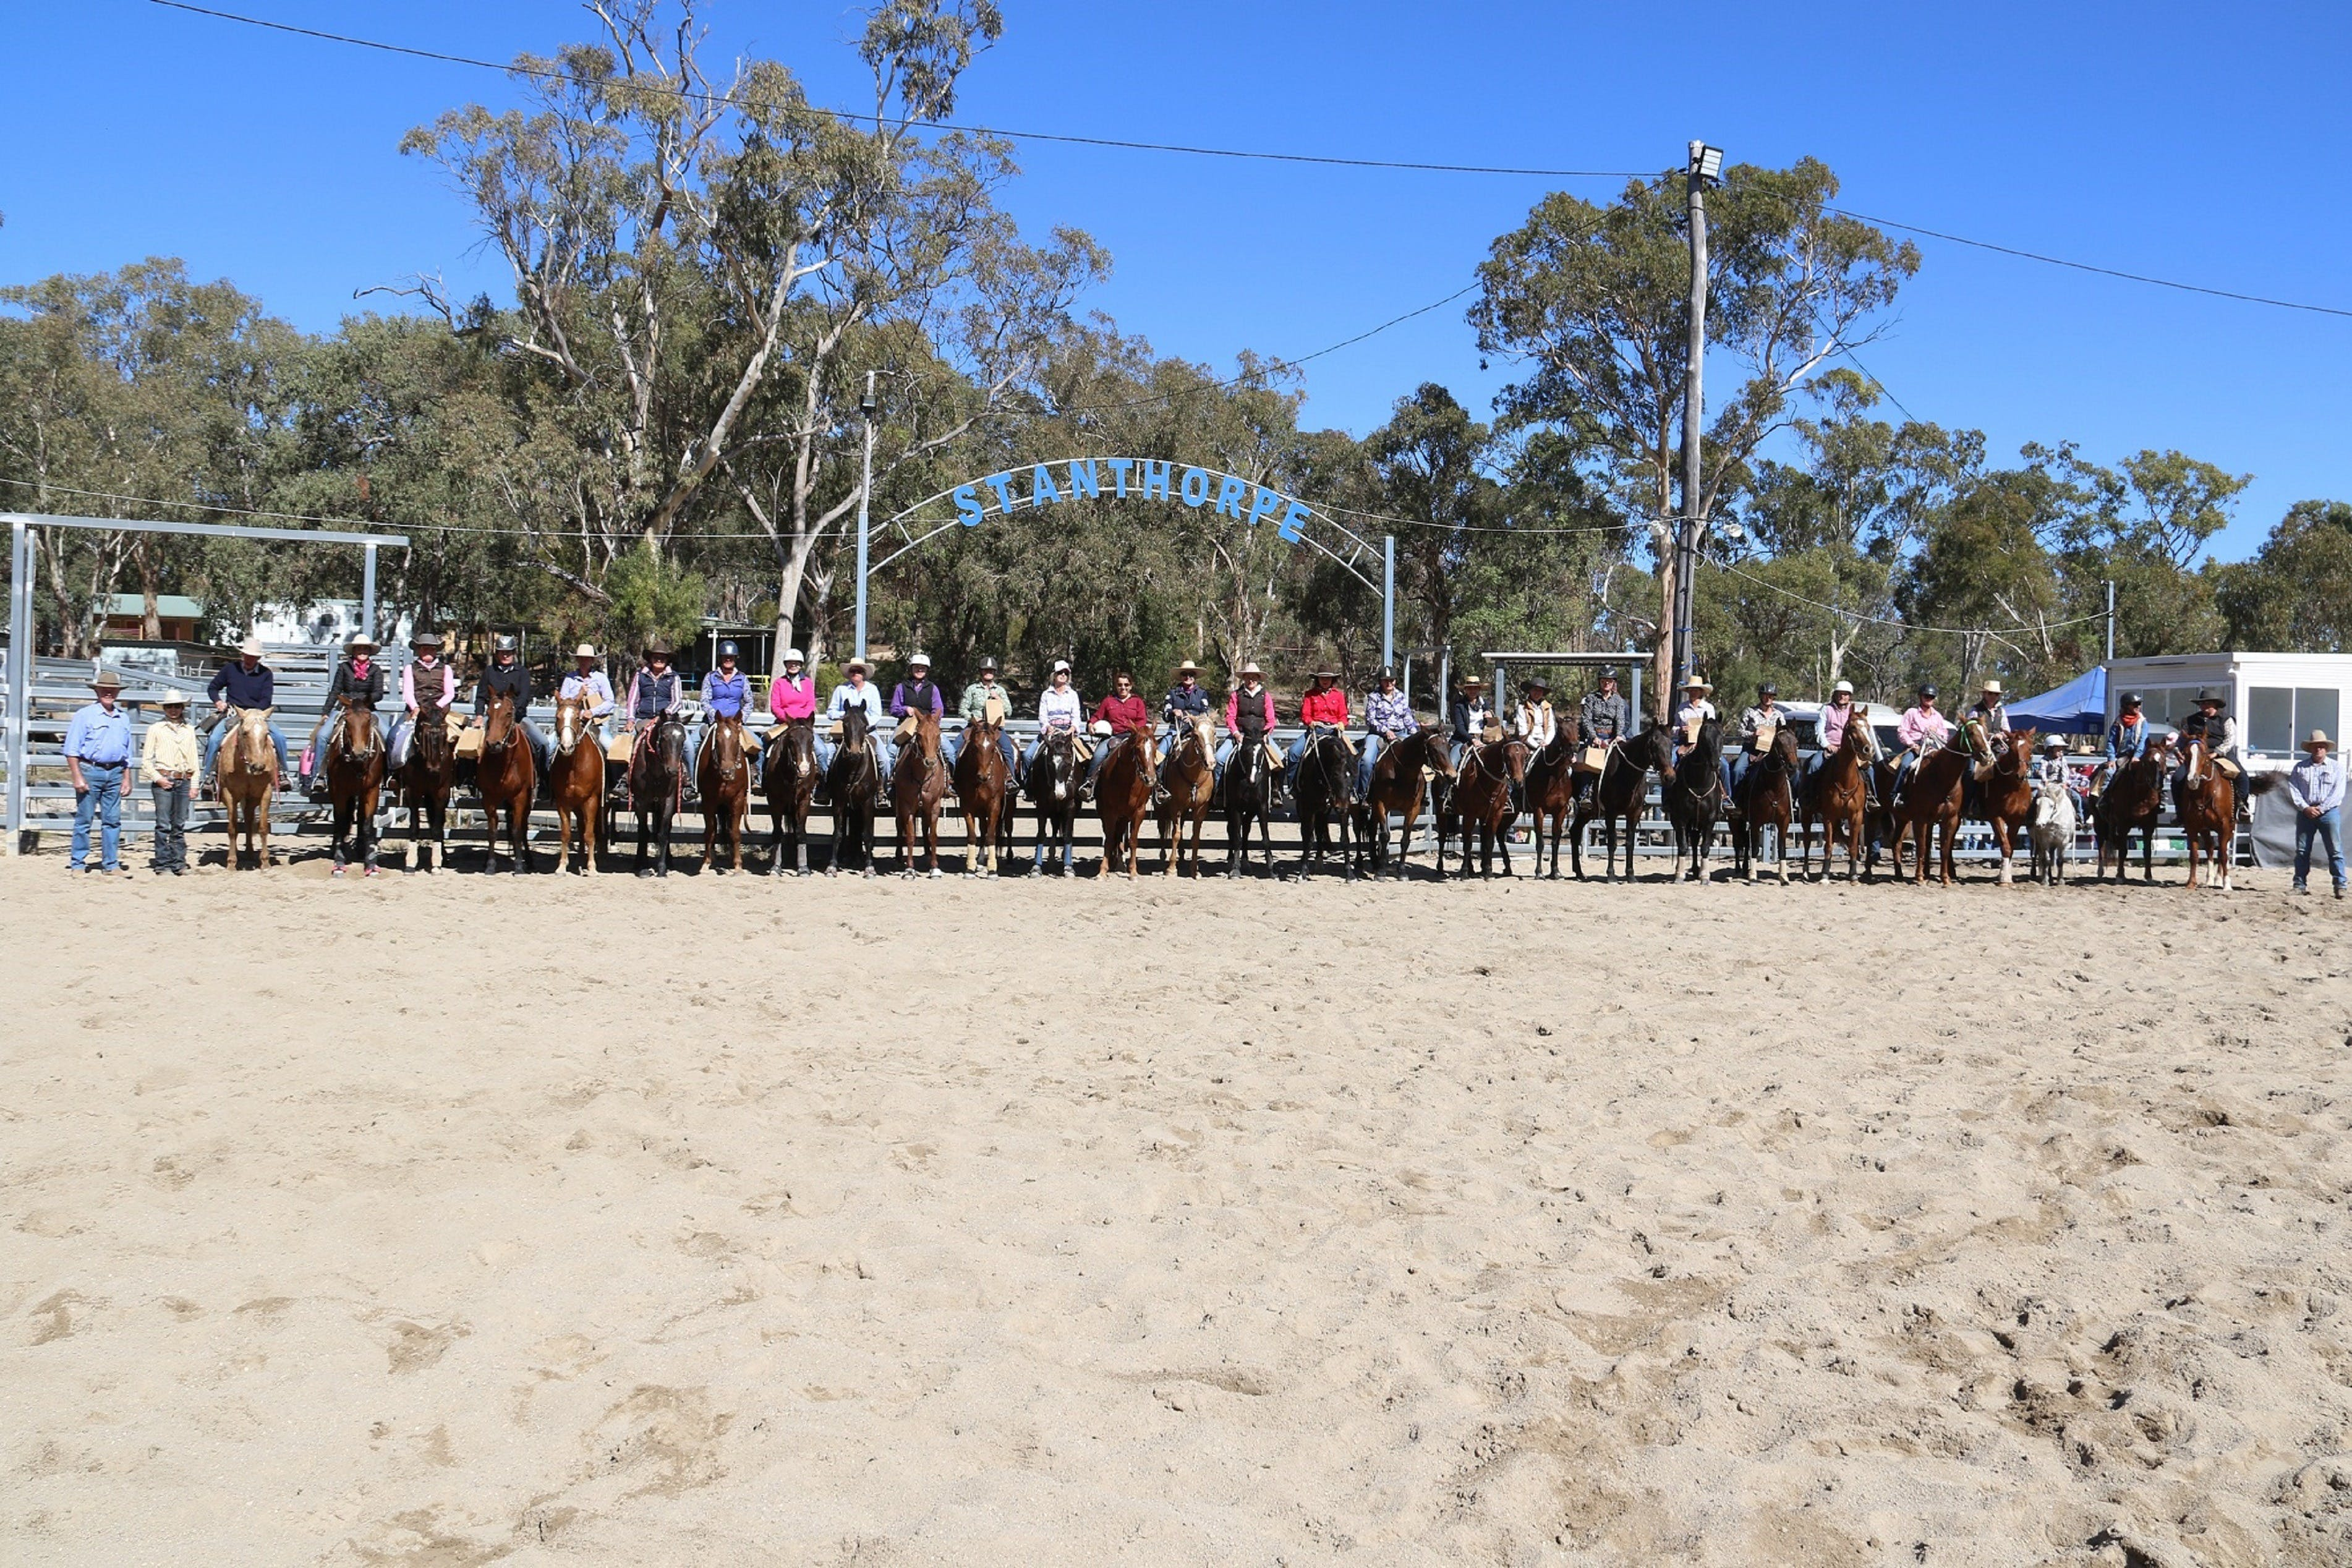 Australian Campdraft Association National Finals Campdraft 2021 - QLD Tourism